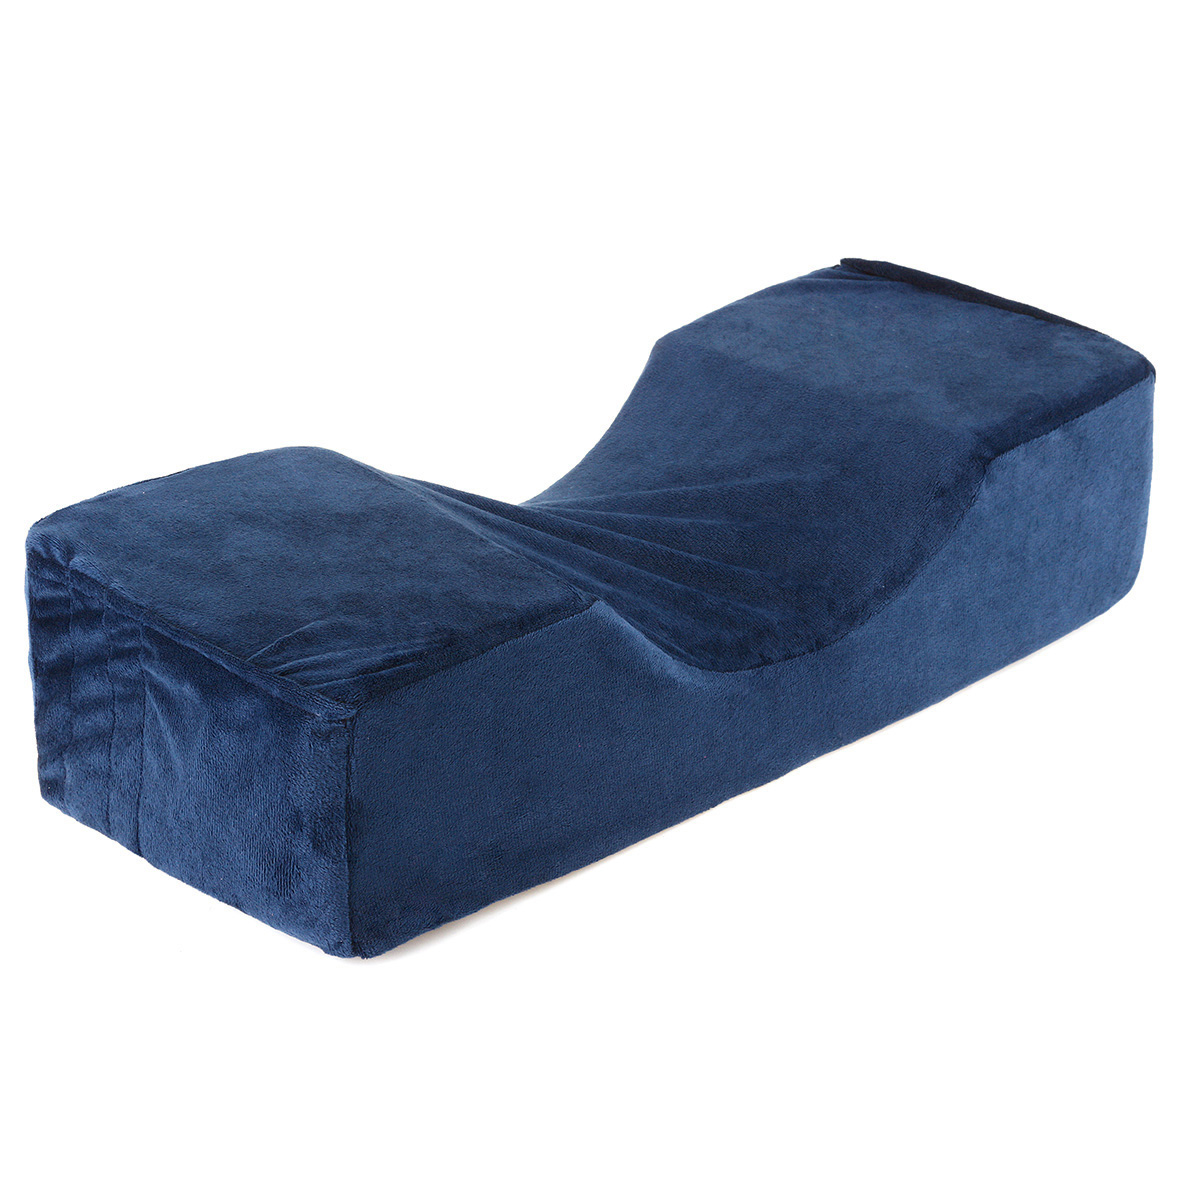 Eyelash Extension Pillow Professional Eyelash Pillow Soft Grafted Eyelashes Pillows For Beauty Salon Use Headrest Neck Support Lashes Pillow